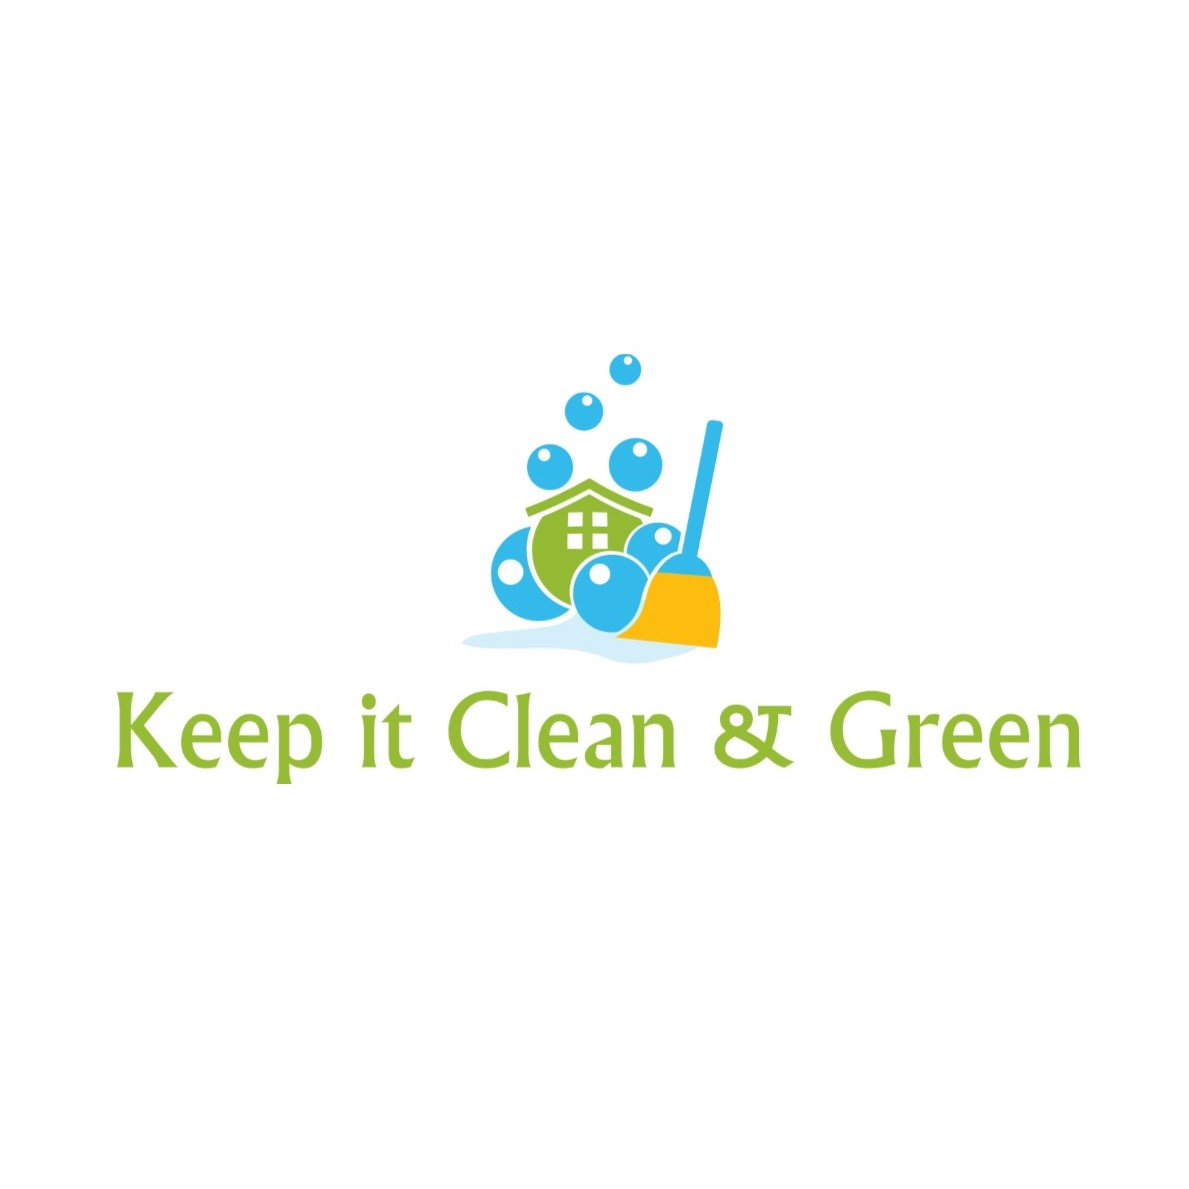 Keep It Clean & Green